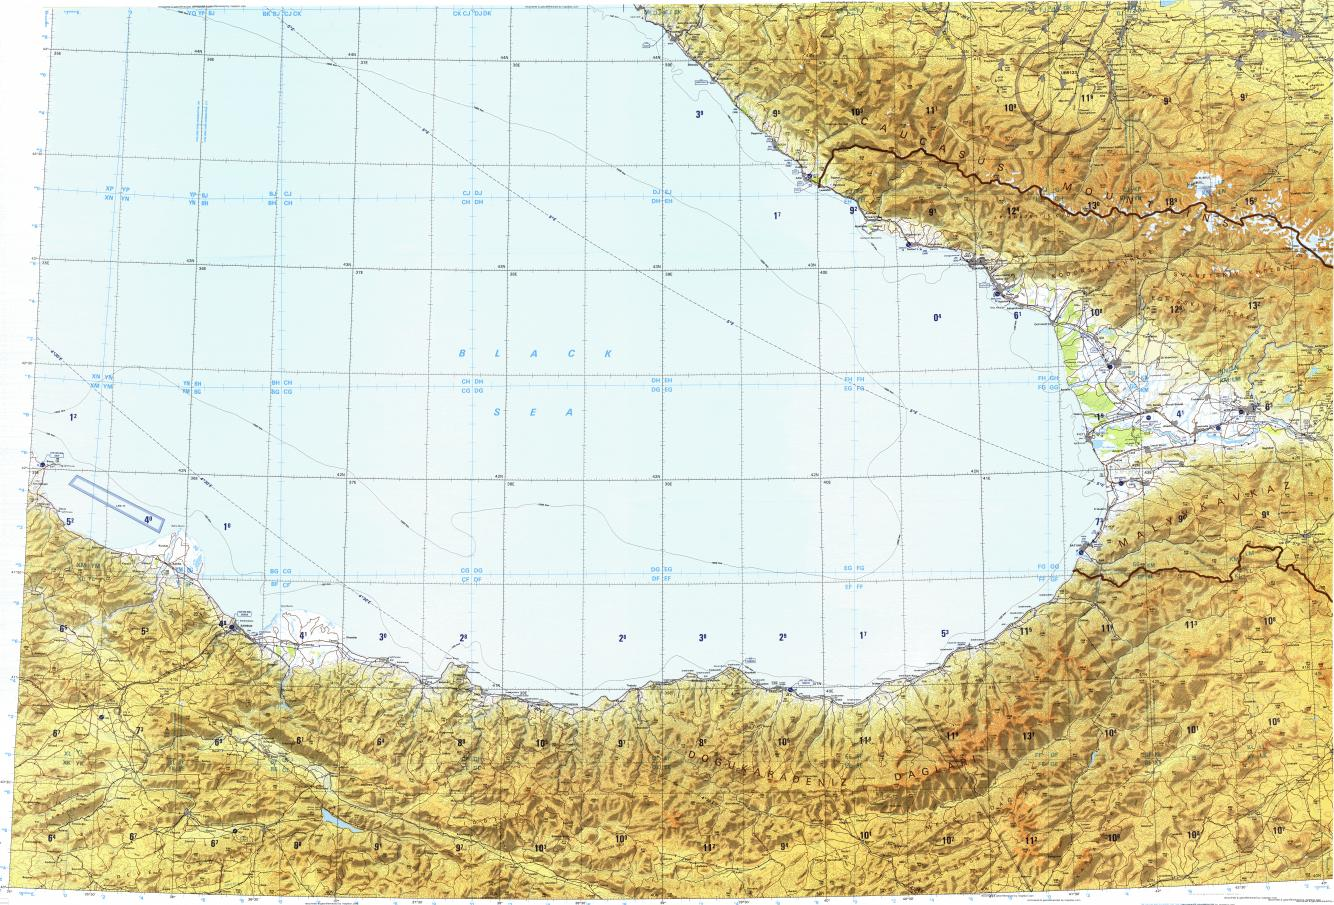 Download topographic map in area of Kutaisi Sochi Rize mapstorcom